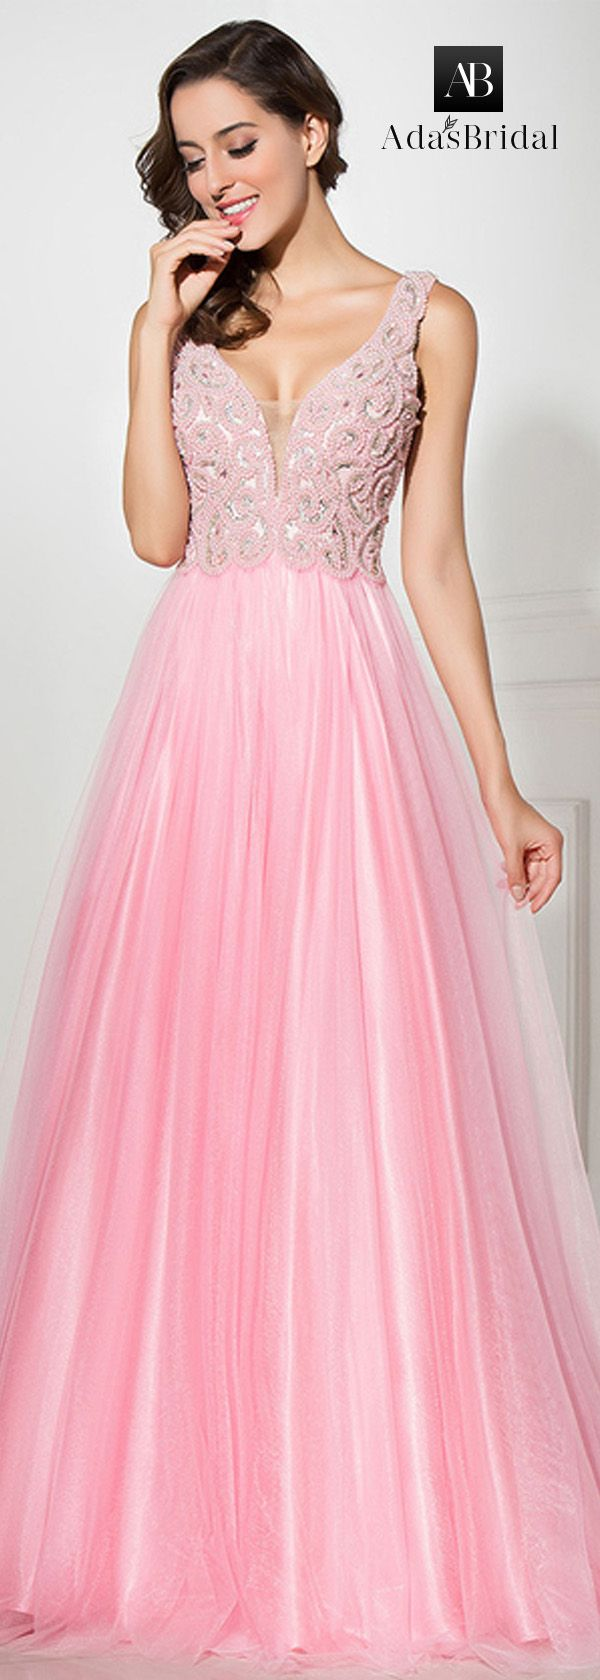 Graceful Tulle V-neck Neckline A-line Prom Dresses With Beadings ...